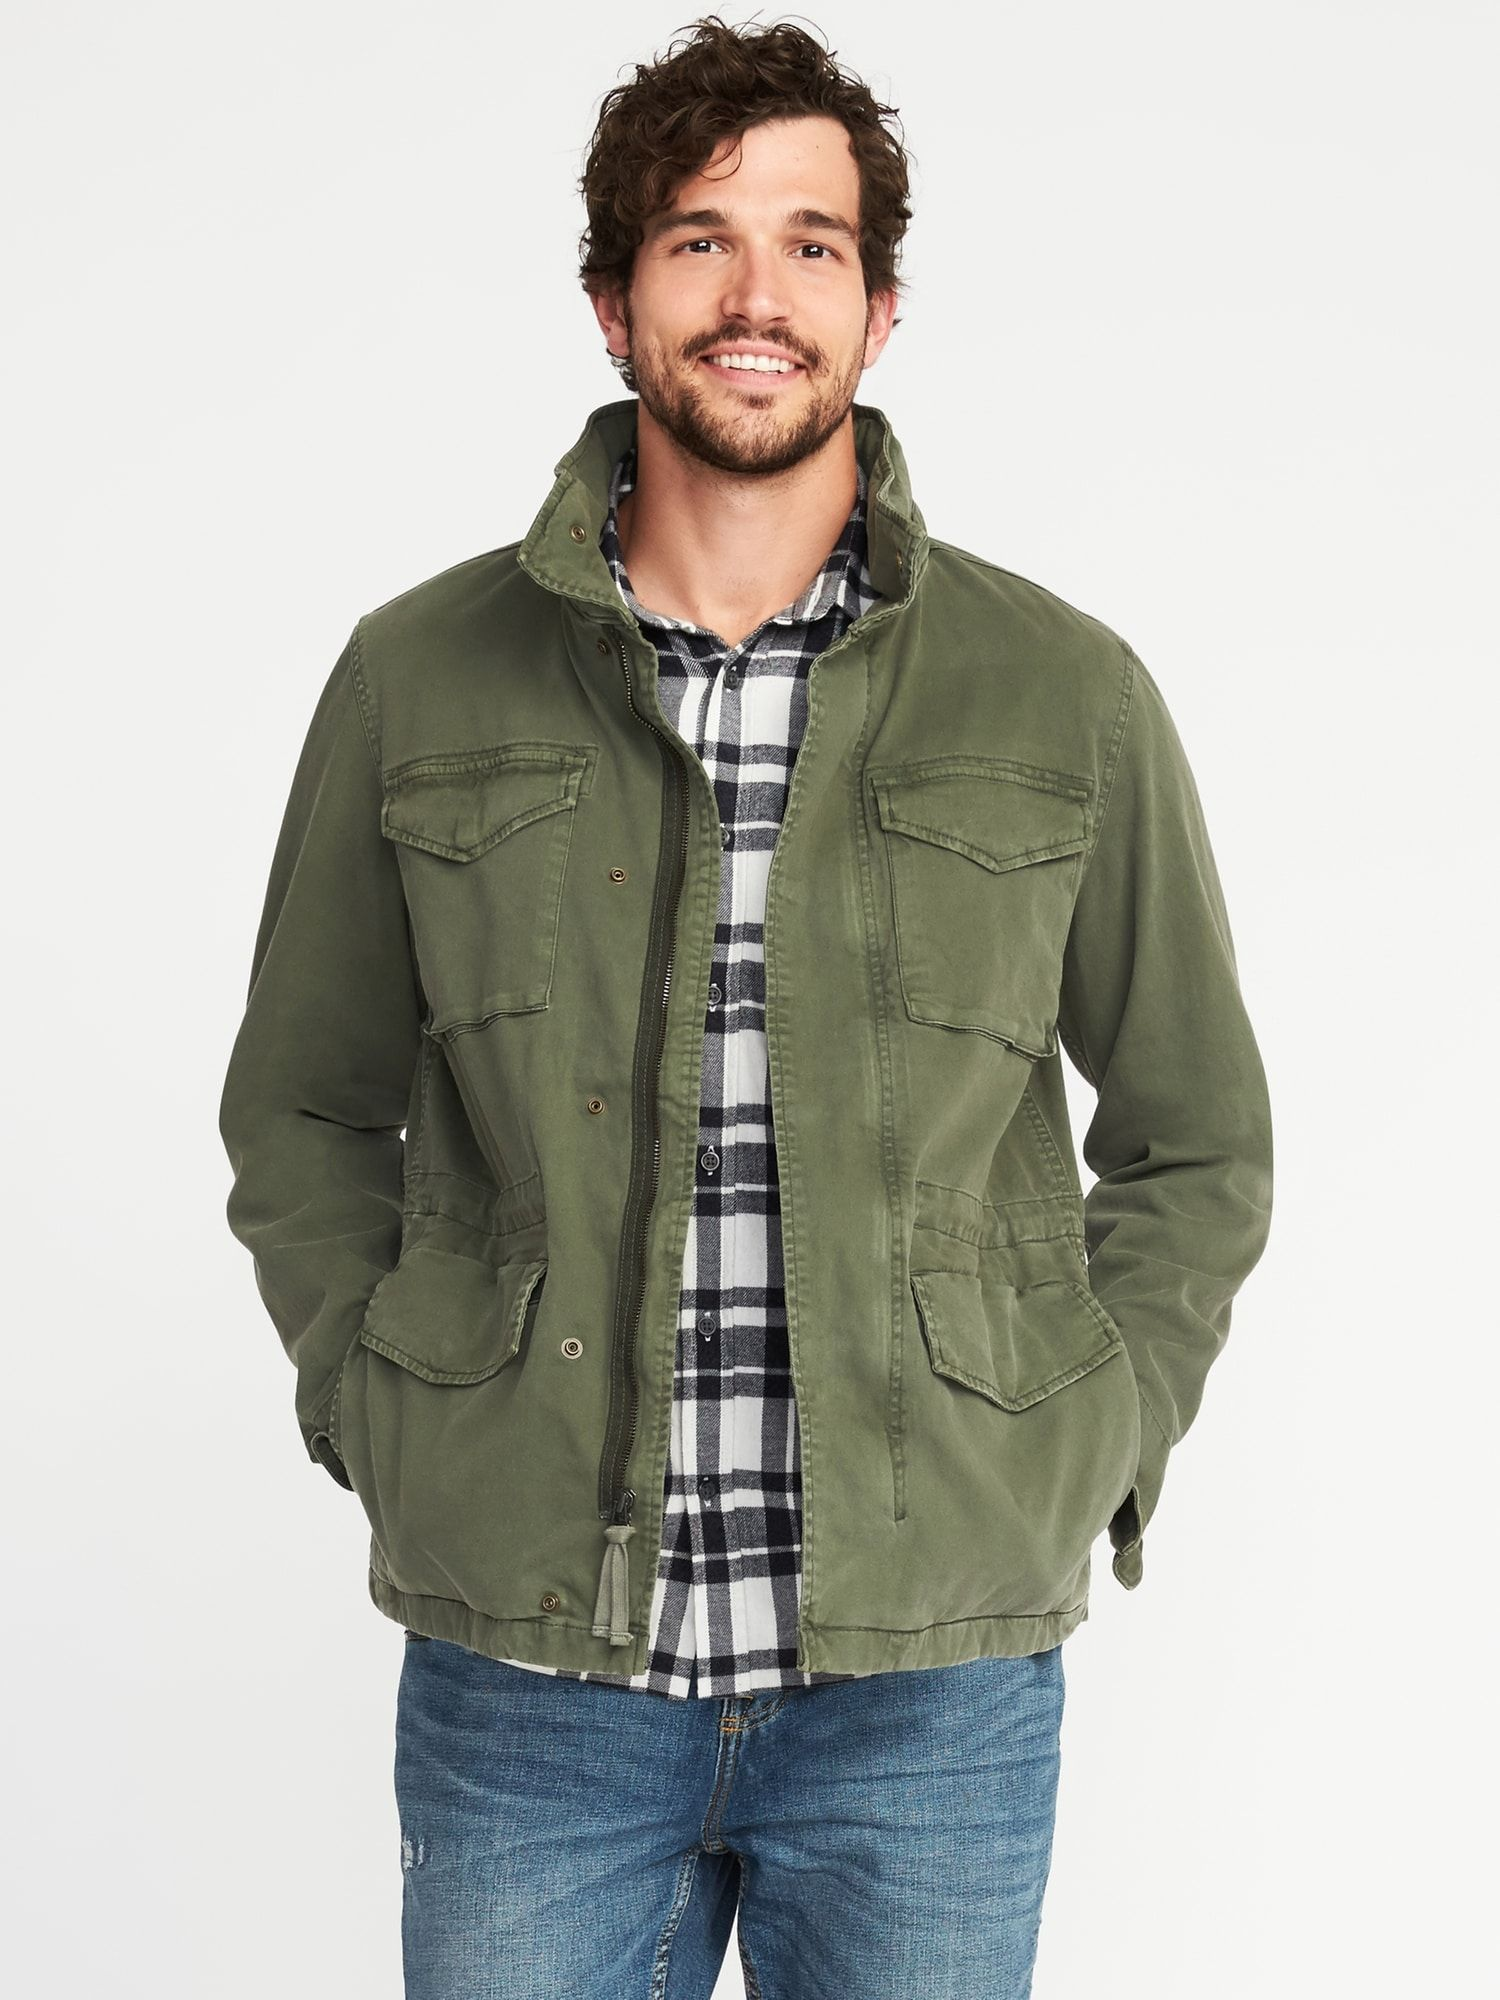 1a3e9557bfe0 Old Navy - Garment-Dyed Built-In-Flex Twill Jacket for Men